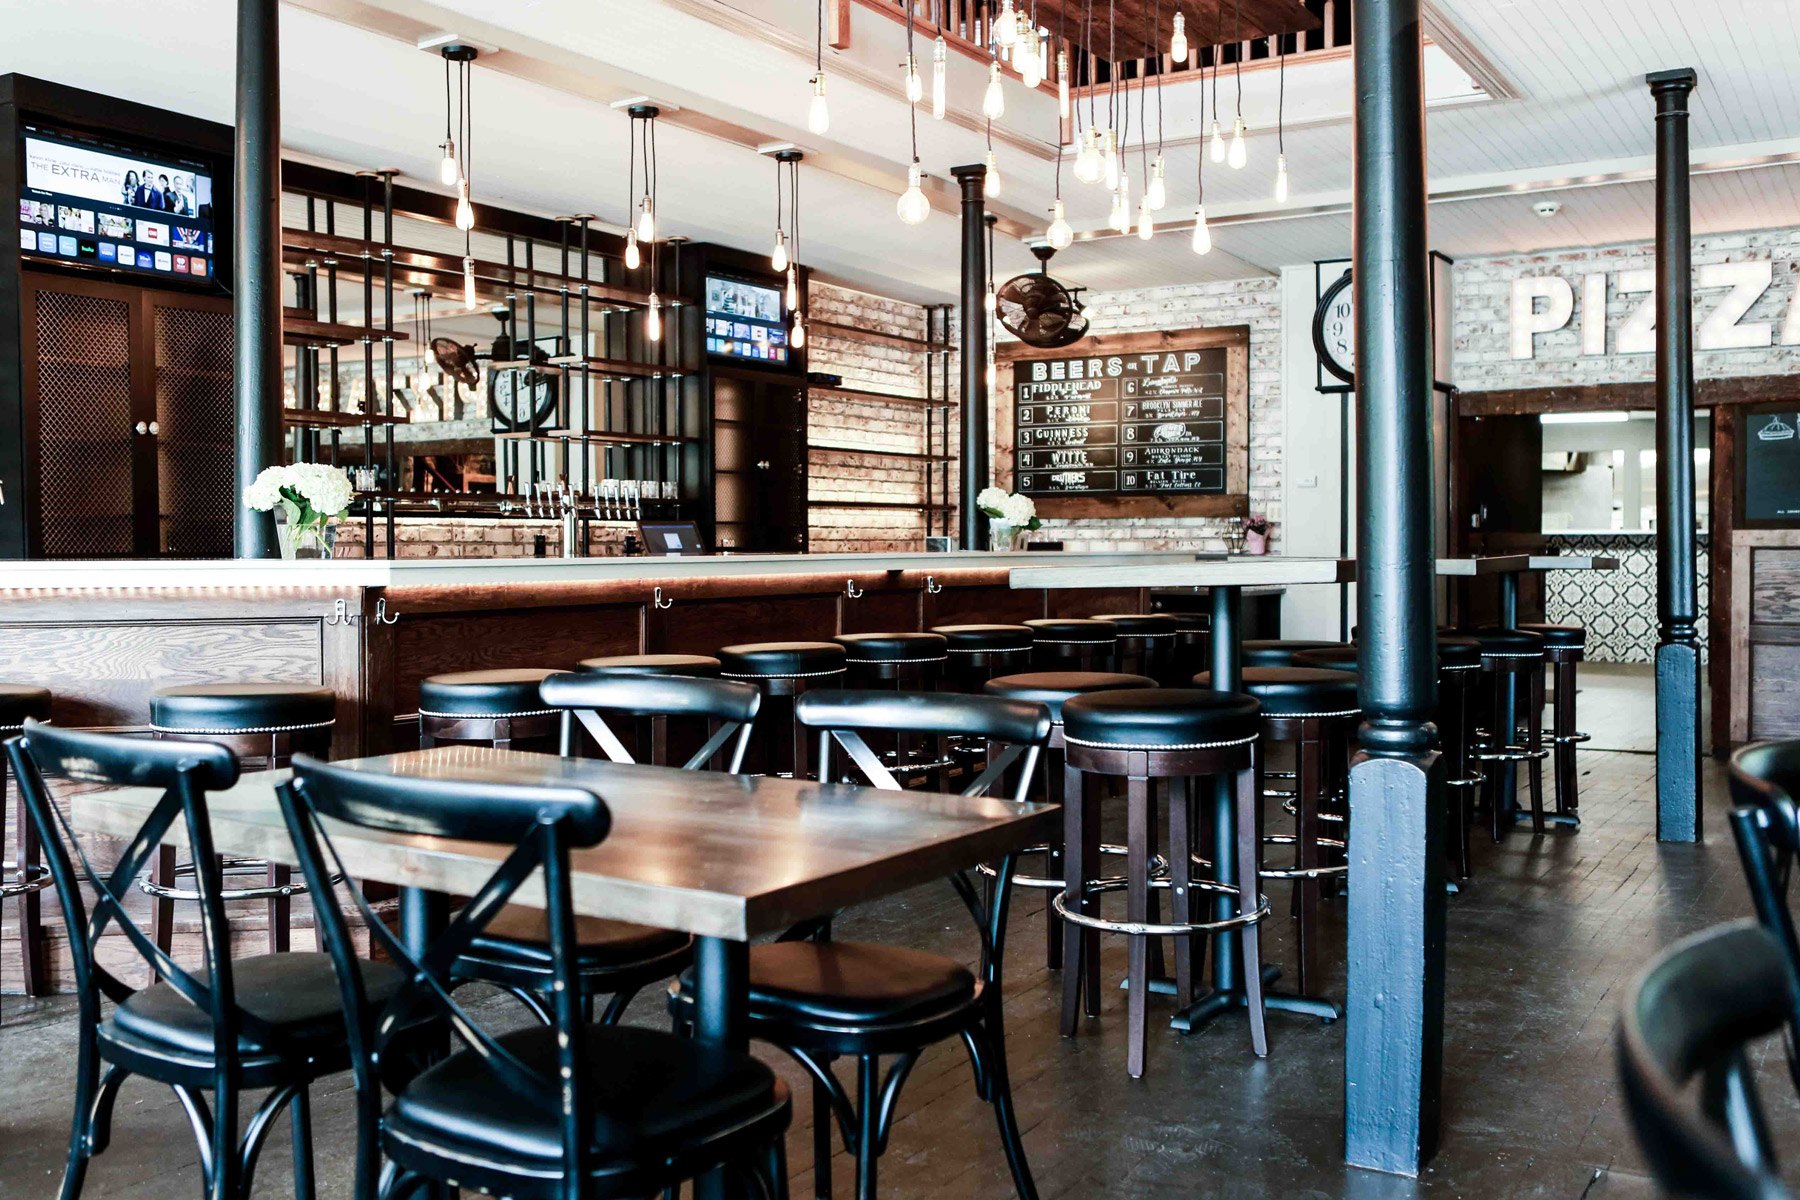 Pizza Place Near Me - Classic Crust dining room and bar